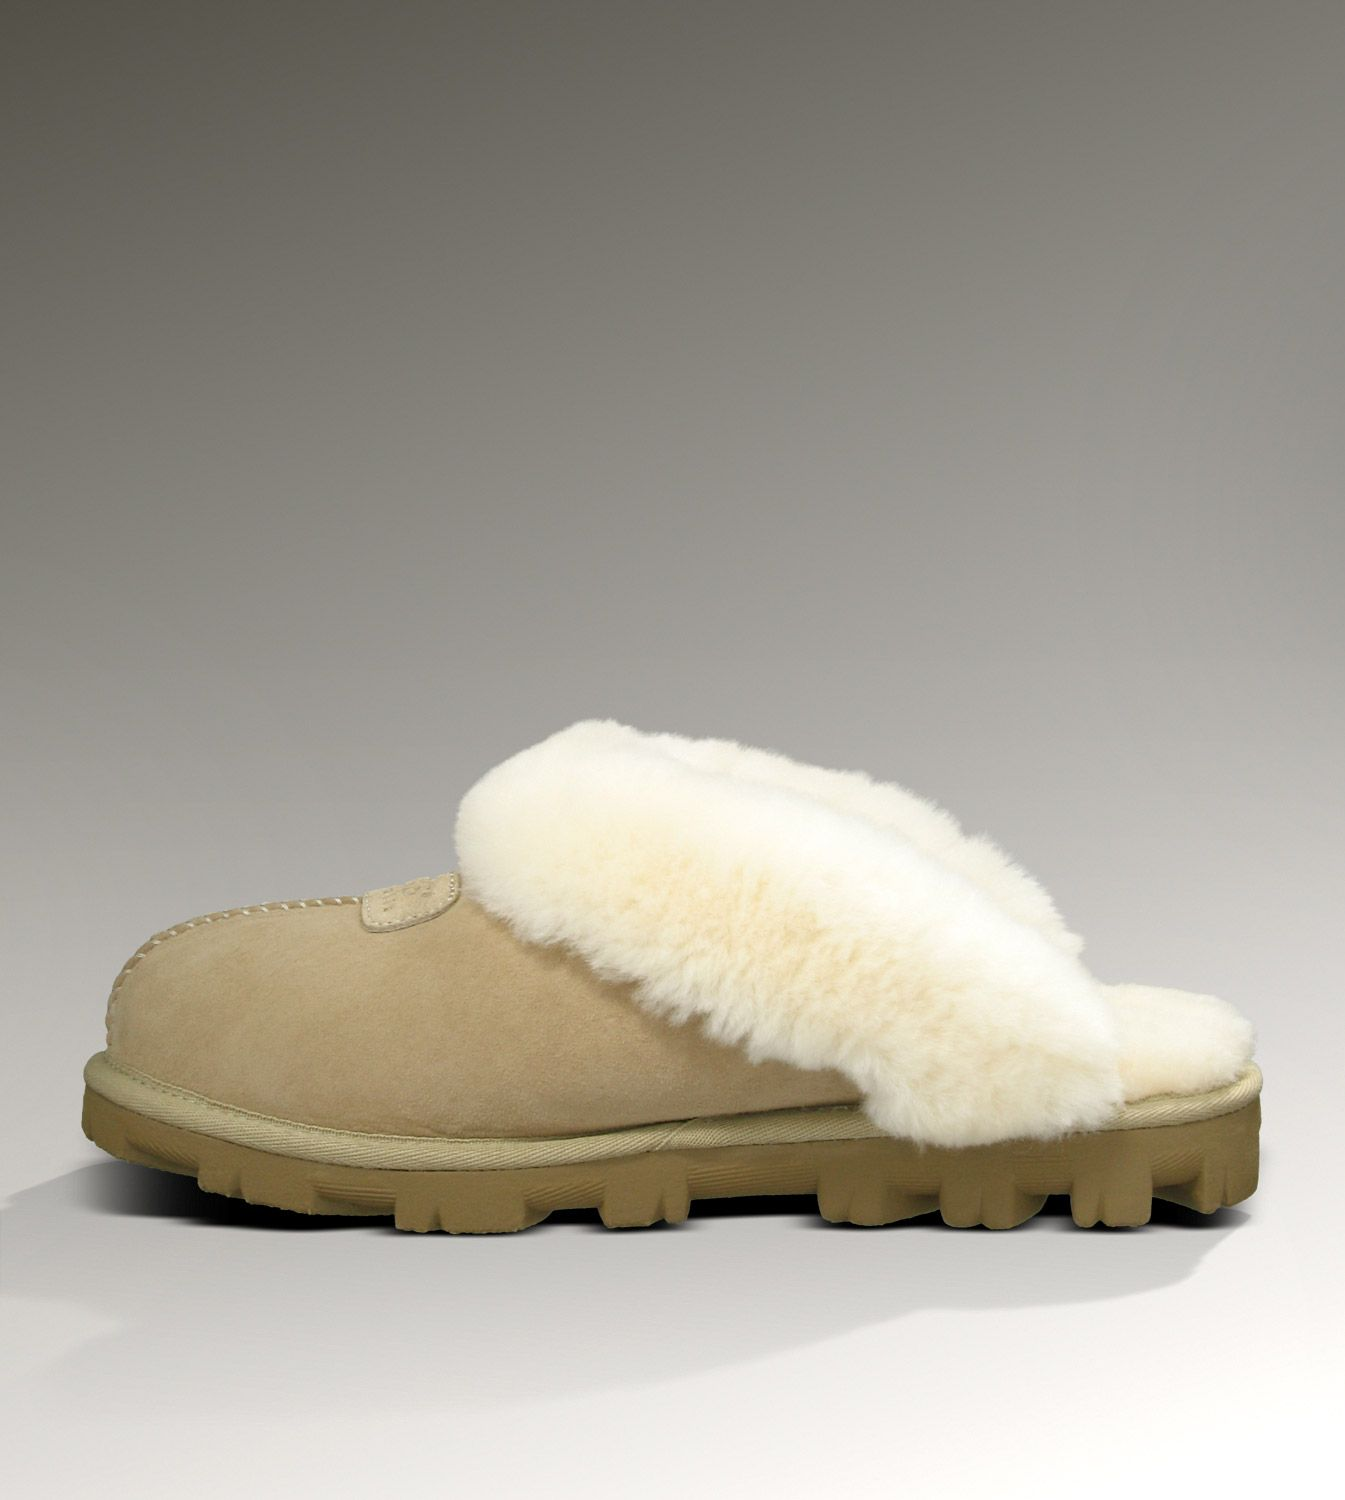 UGG Coquette 5125 Sand Slippers